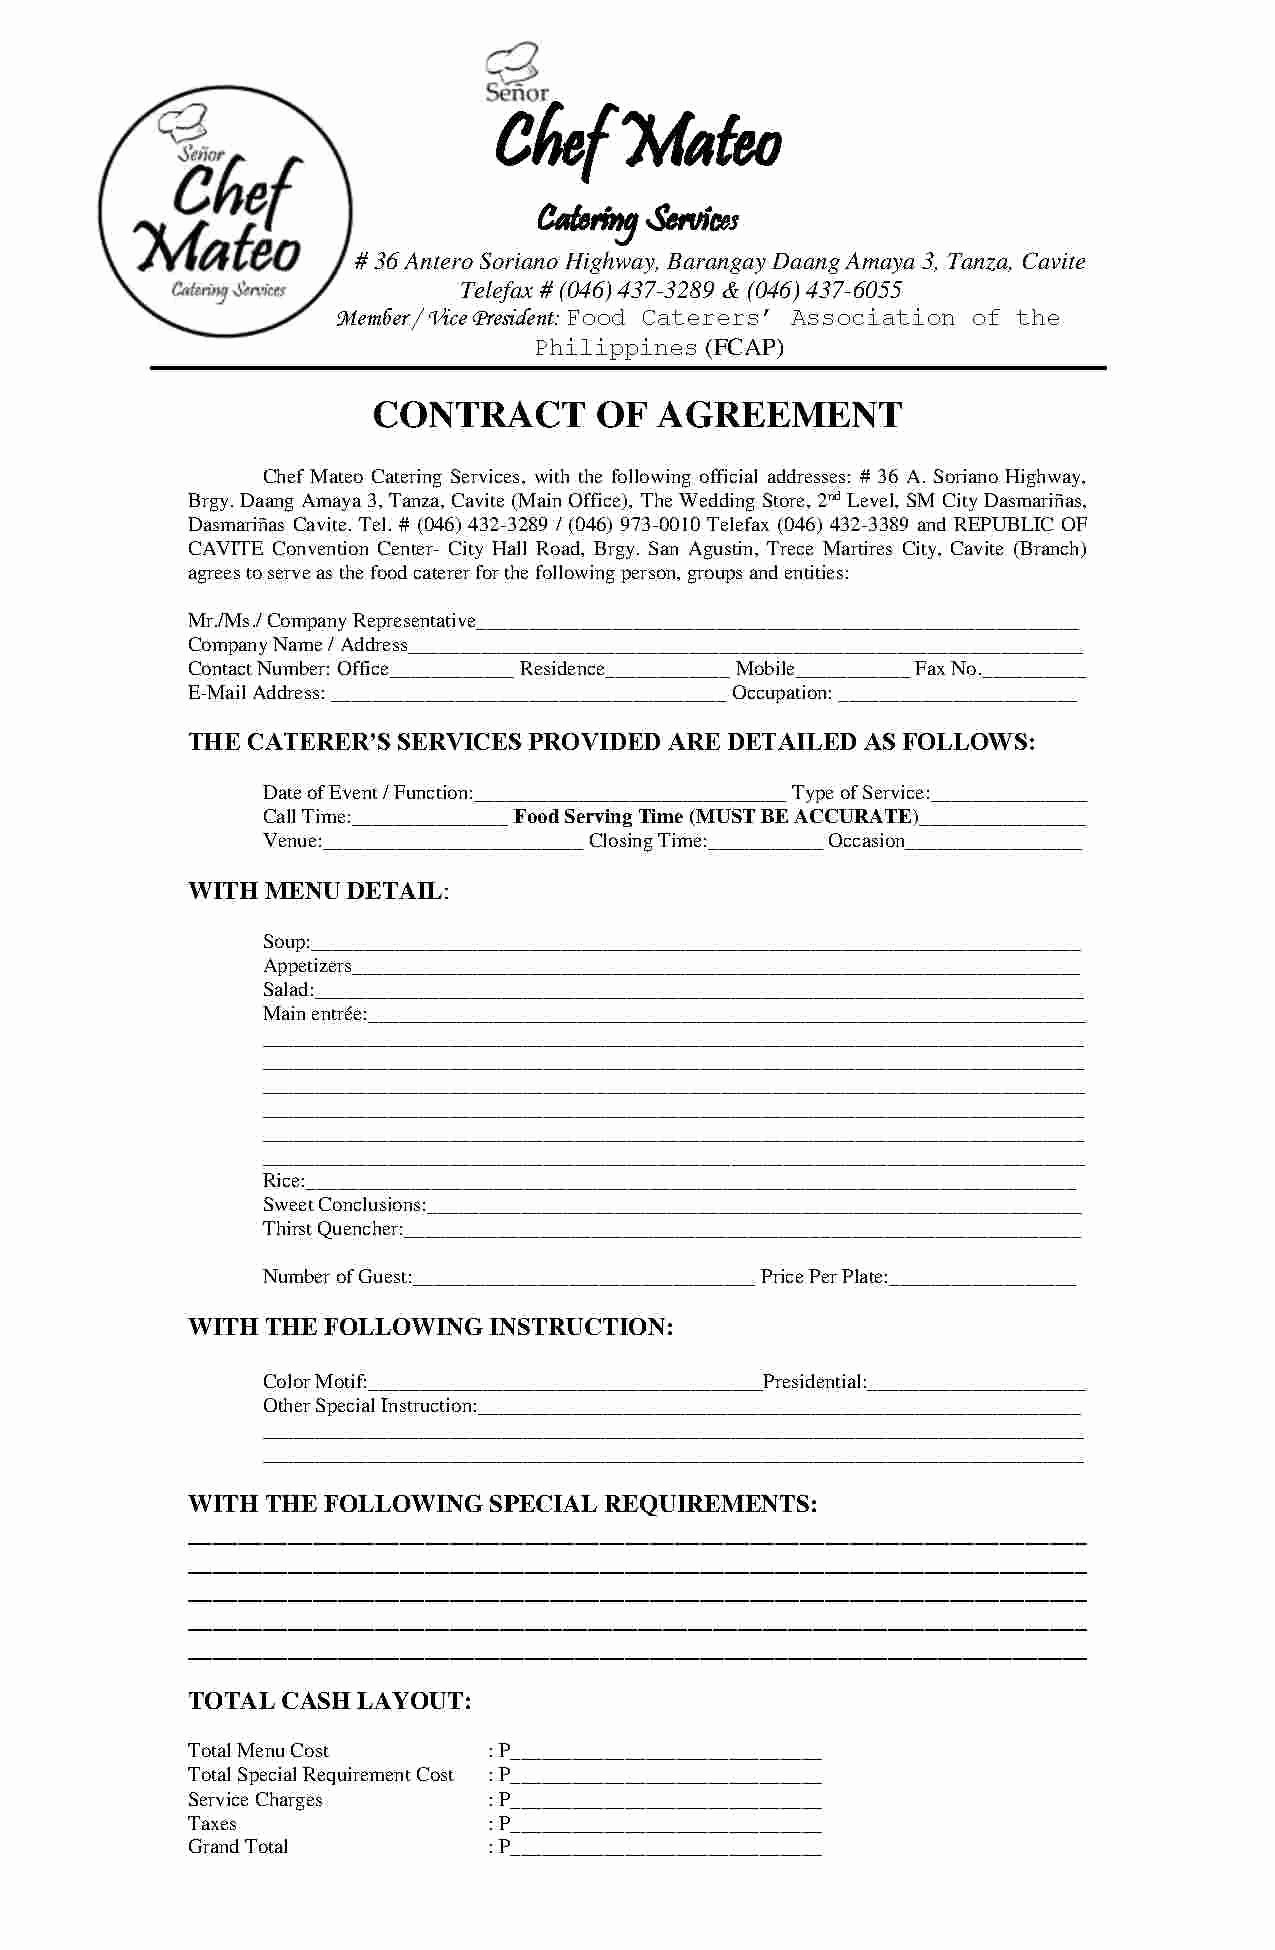 Catering Contract Template Free Lovely Download Catering Contract Style 5 Template for Free at